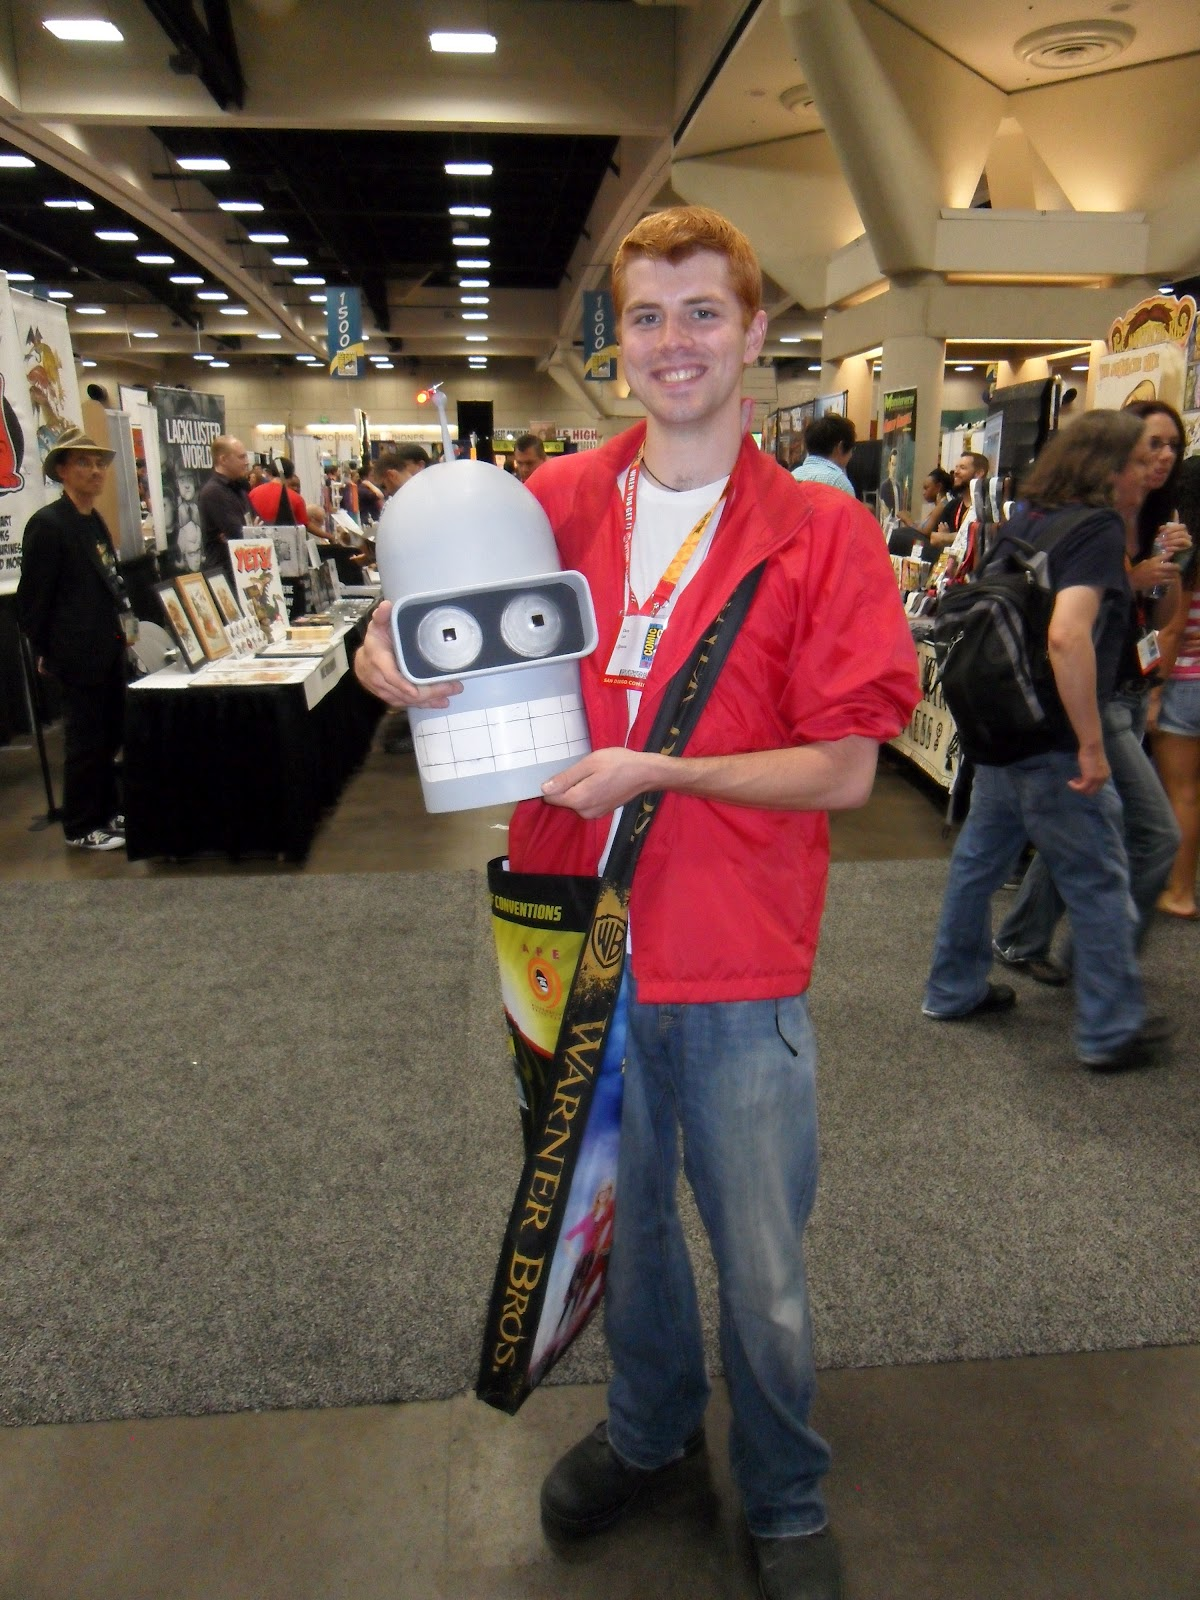 When youu0027re a guy and a redhead your costume choices can be a bit limited. This guy makes the most of it.  sc 1 st  The Yeti Speaks! & The Yeti Speaks!: Pictures from the 2012 Comic-Con part 7